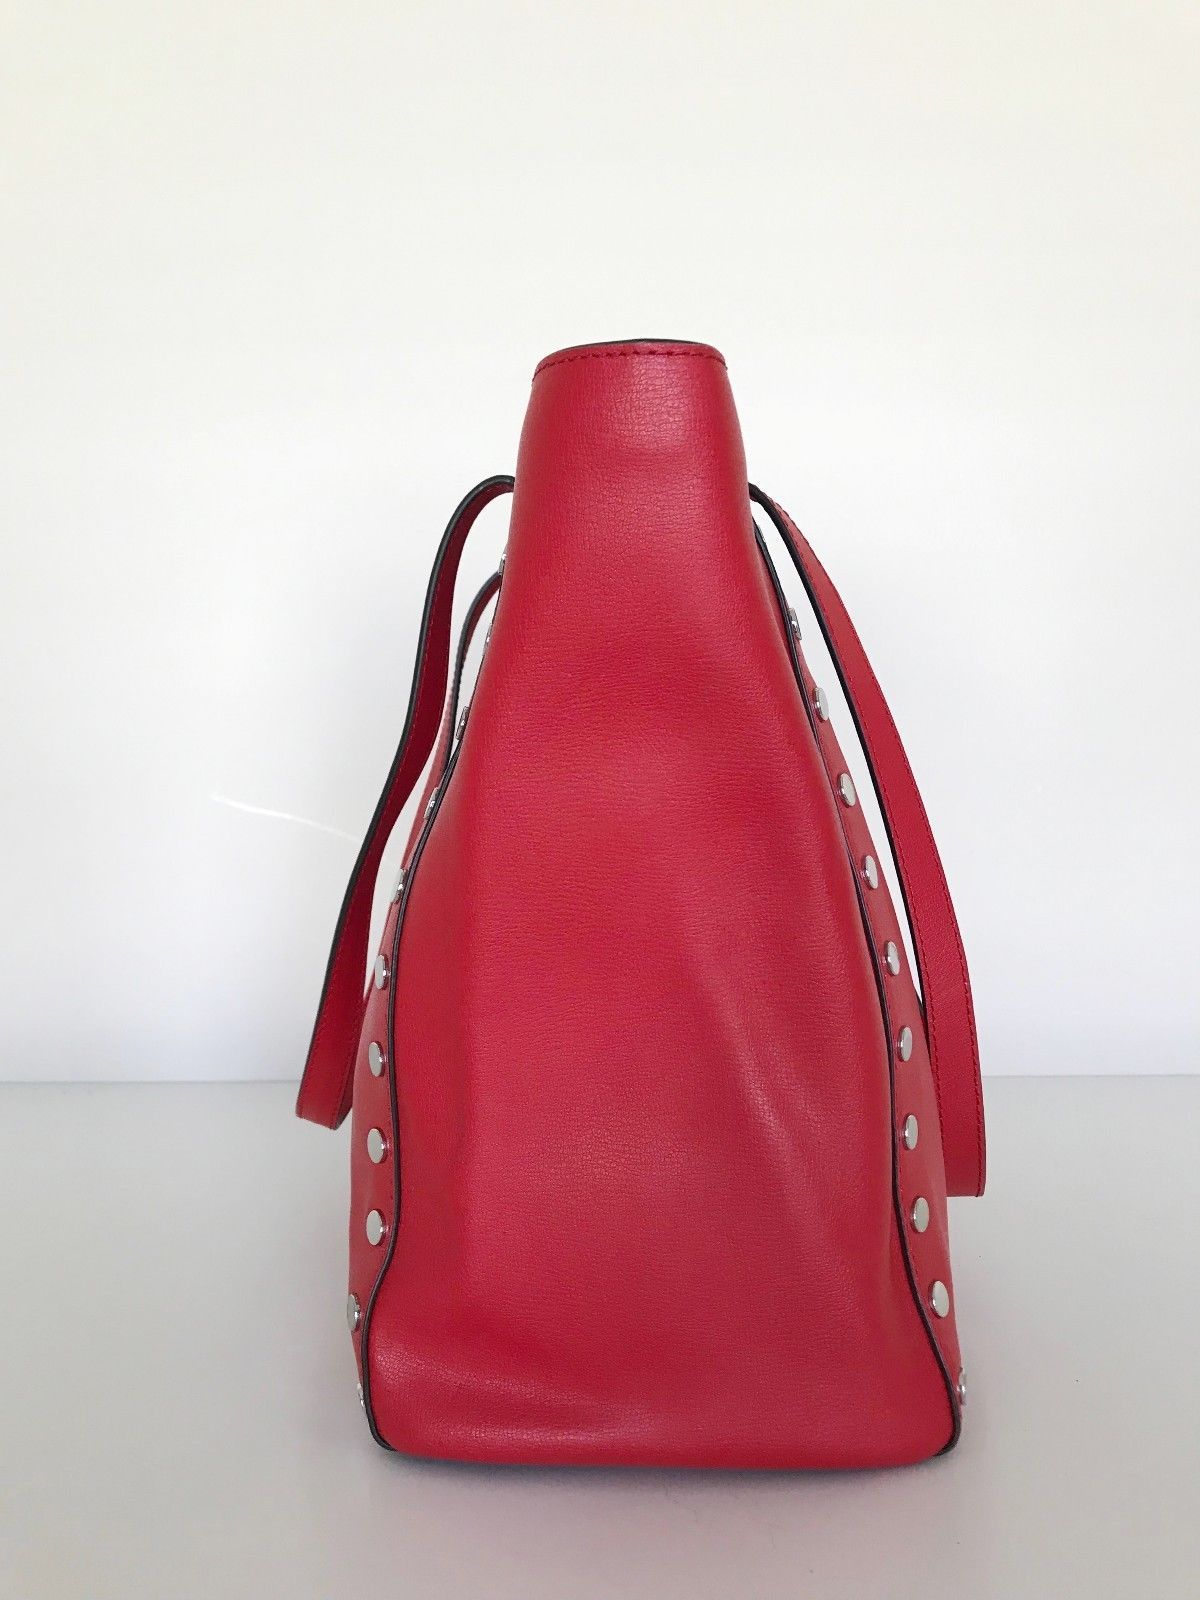 6a45d6cbcbb5 Michael Kors Rivington Stud Lg Leather Tote Bright Red Tote NEW 100%  Authentic